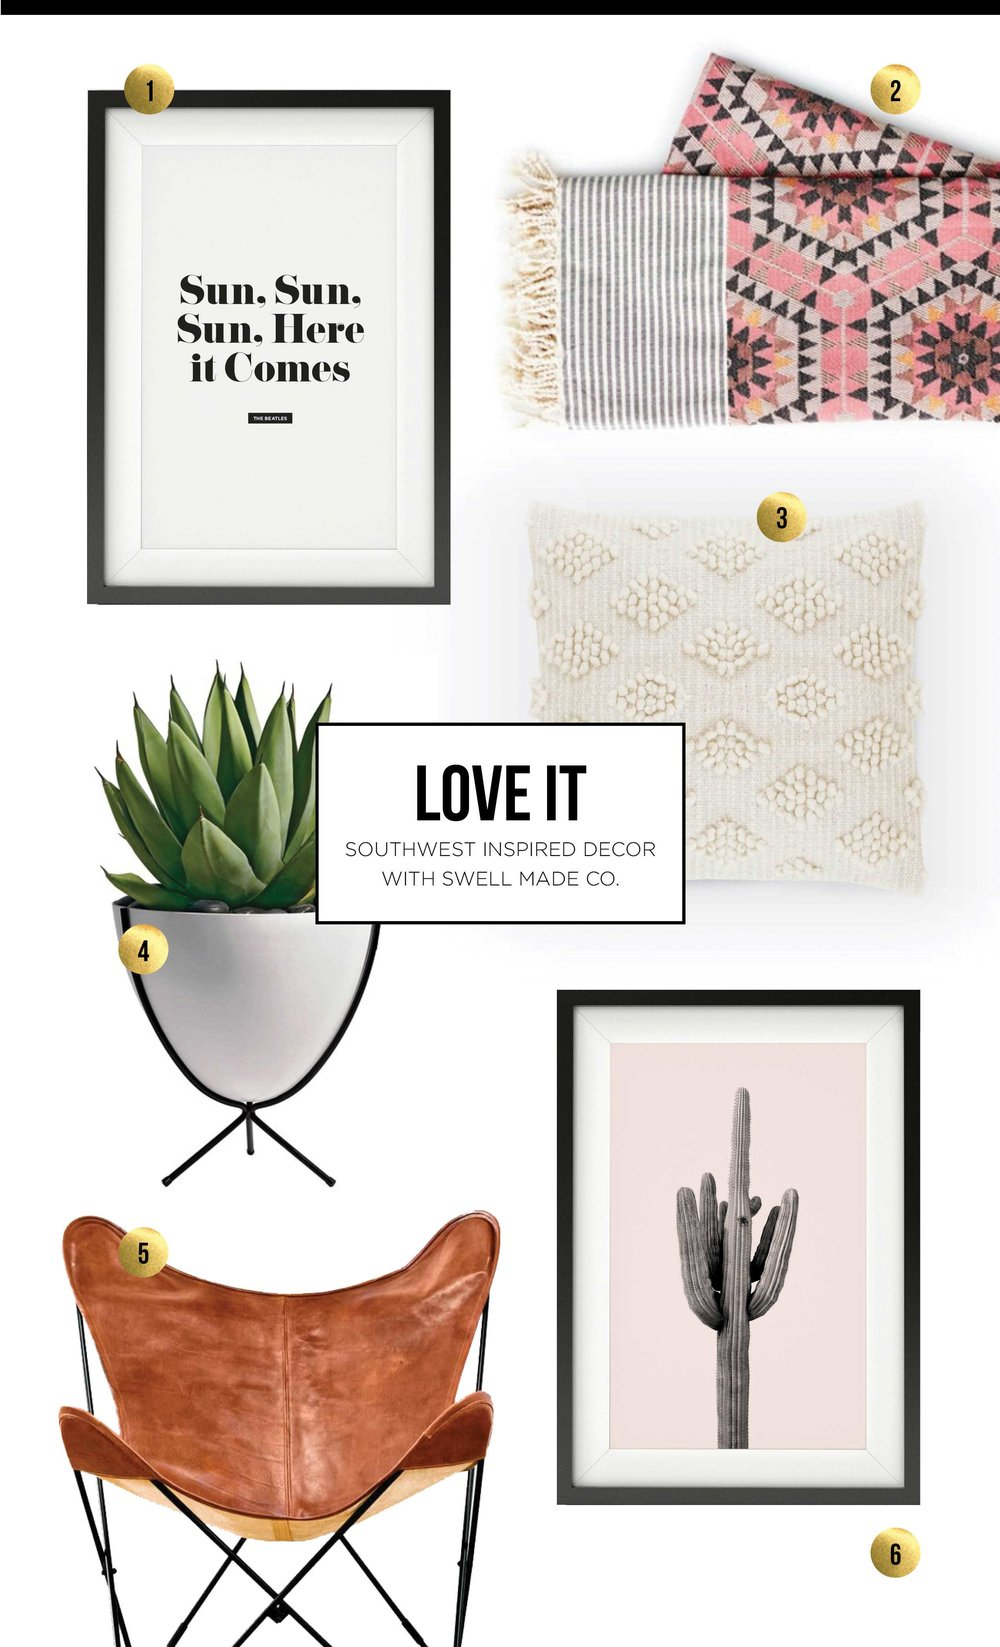 LOVE IT - Southwest inspired decor with Swell Made Co.